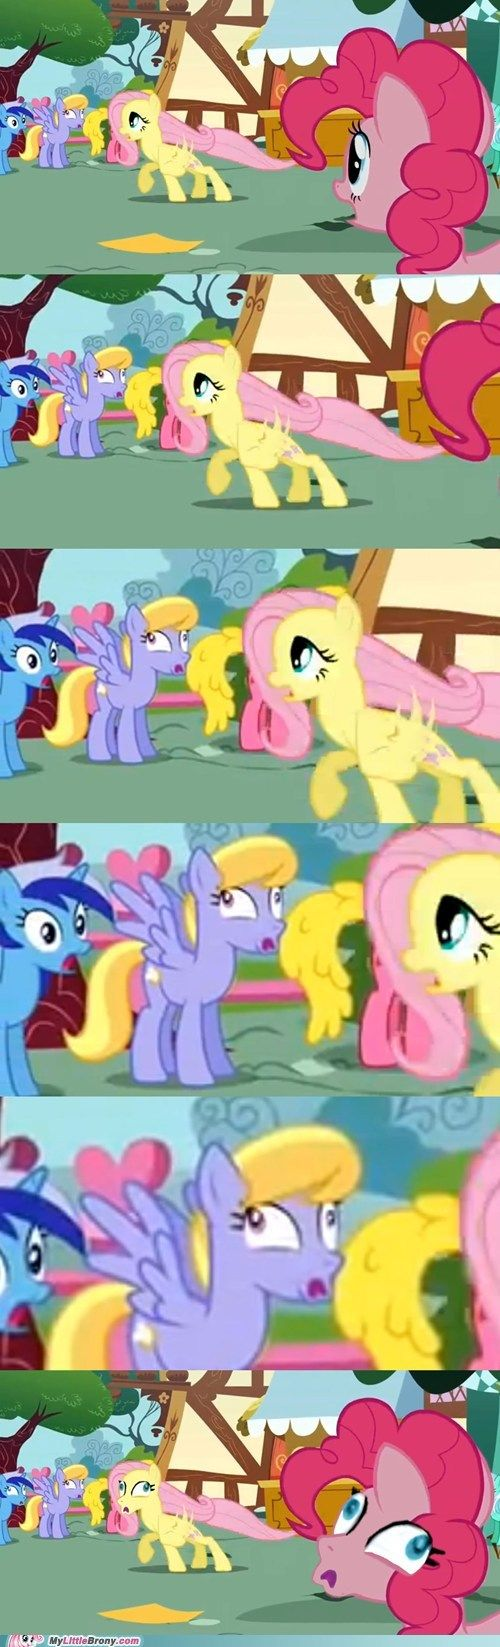 I seriously died the first time I saw this. bronymate.com, brony mate, Brony love, bronies, BronyMate, brohoof, everypony, equestriadaily, bronyland, 20% cooler, pegasister, bronycon, mlp, my little pony, applejack, friendship is magic, rainbow dash, fluttershy, dating site, social network, Twilight Sparkle, rarity, spike, Pinkie Pie, where magical relationships begin